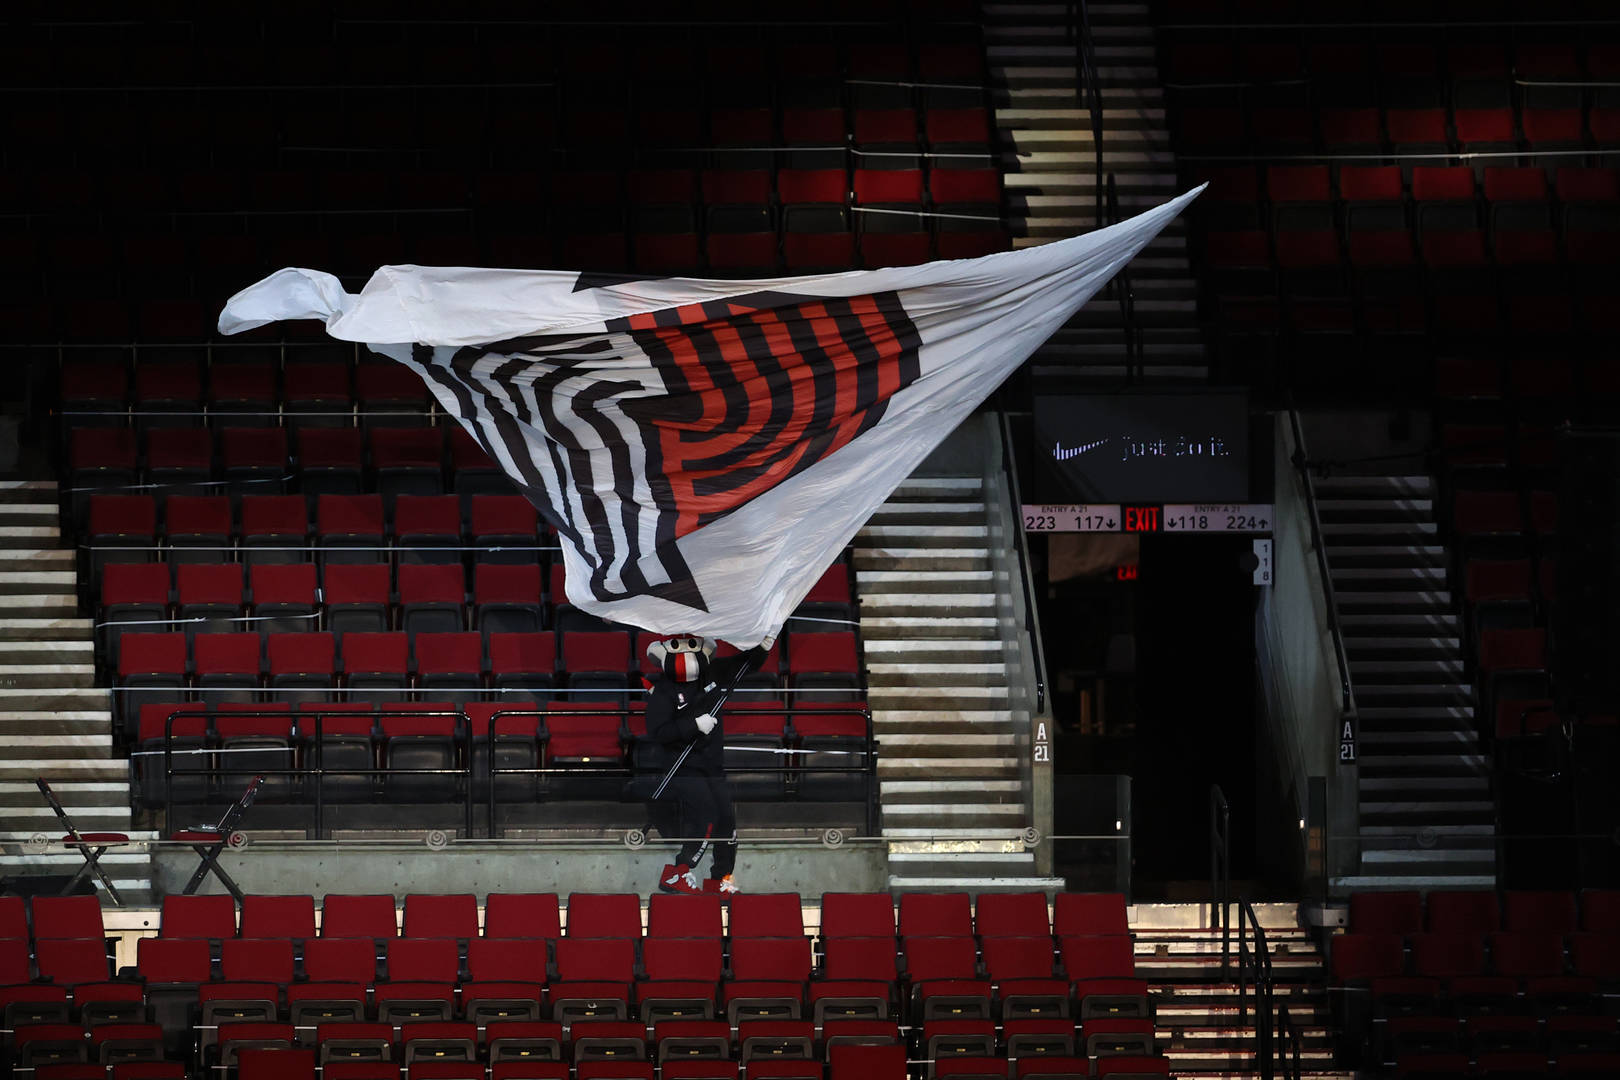 Portland Trail Blazers mascot, Blaze the Trail Cat, waves the team flag during a game against the Boston Celtics at Moda Center on April 13, 2021 in Portland, Oregon.